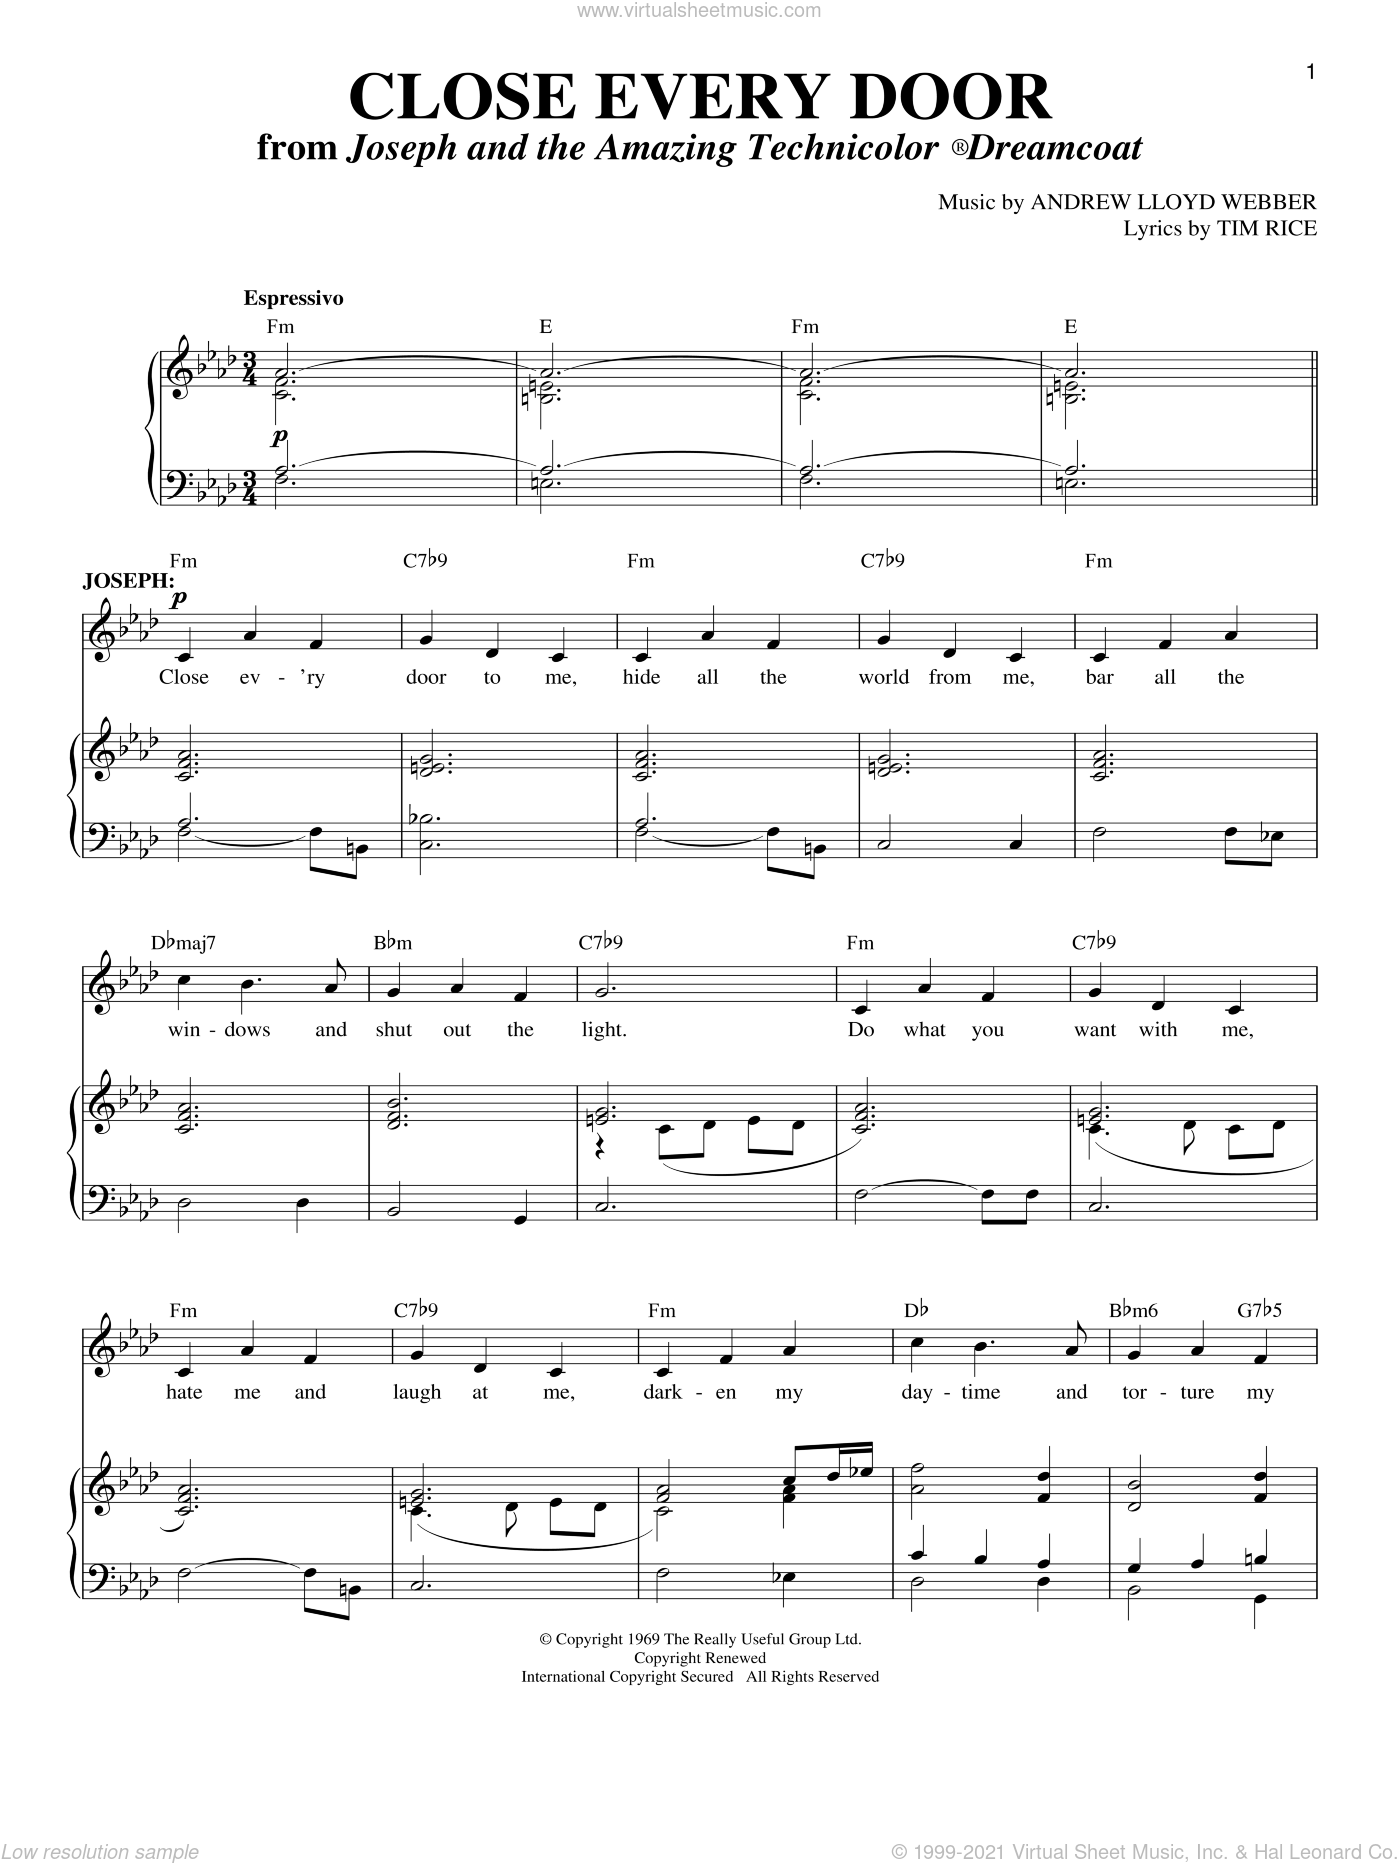 Close Every Door sheet music for voice and piano by Tim Rice and Andrew Lloyd Webber. Score Image Preview.